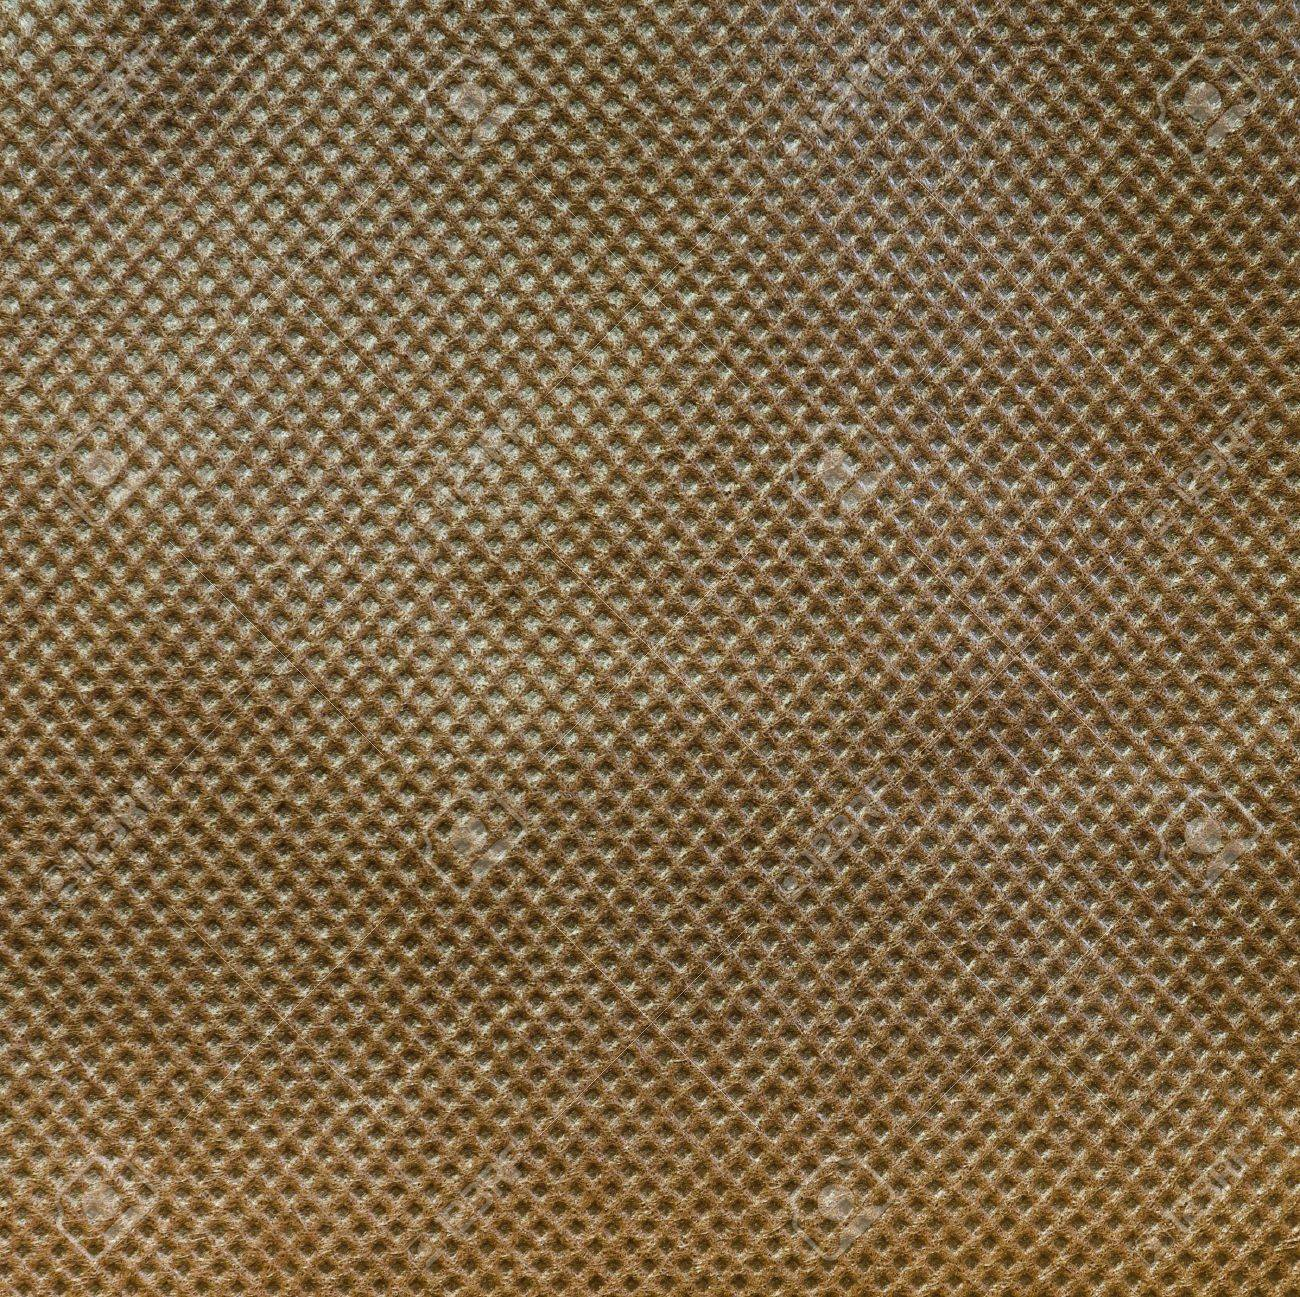 Brown nonwoven fabric texture background Stock Photo - 18707358